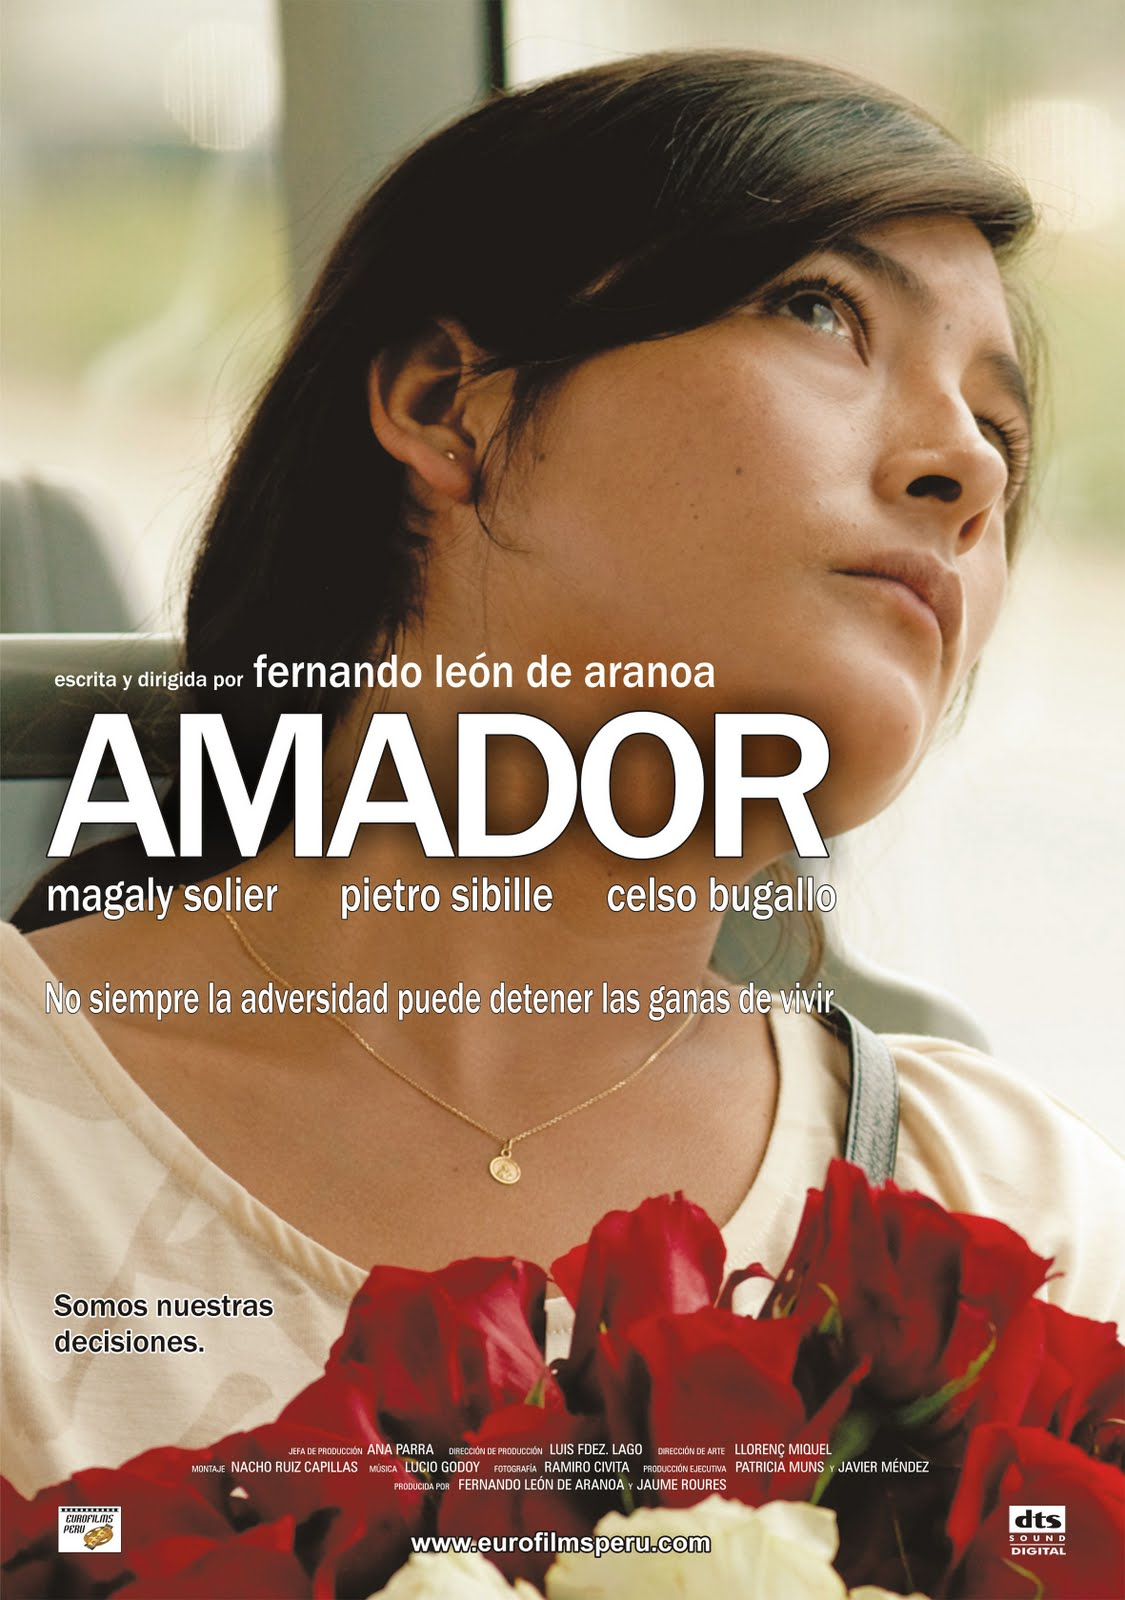 amador-2010-poster